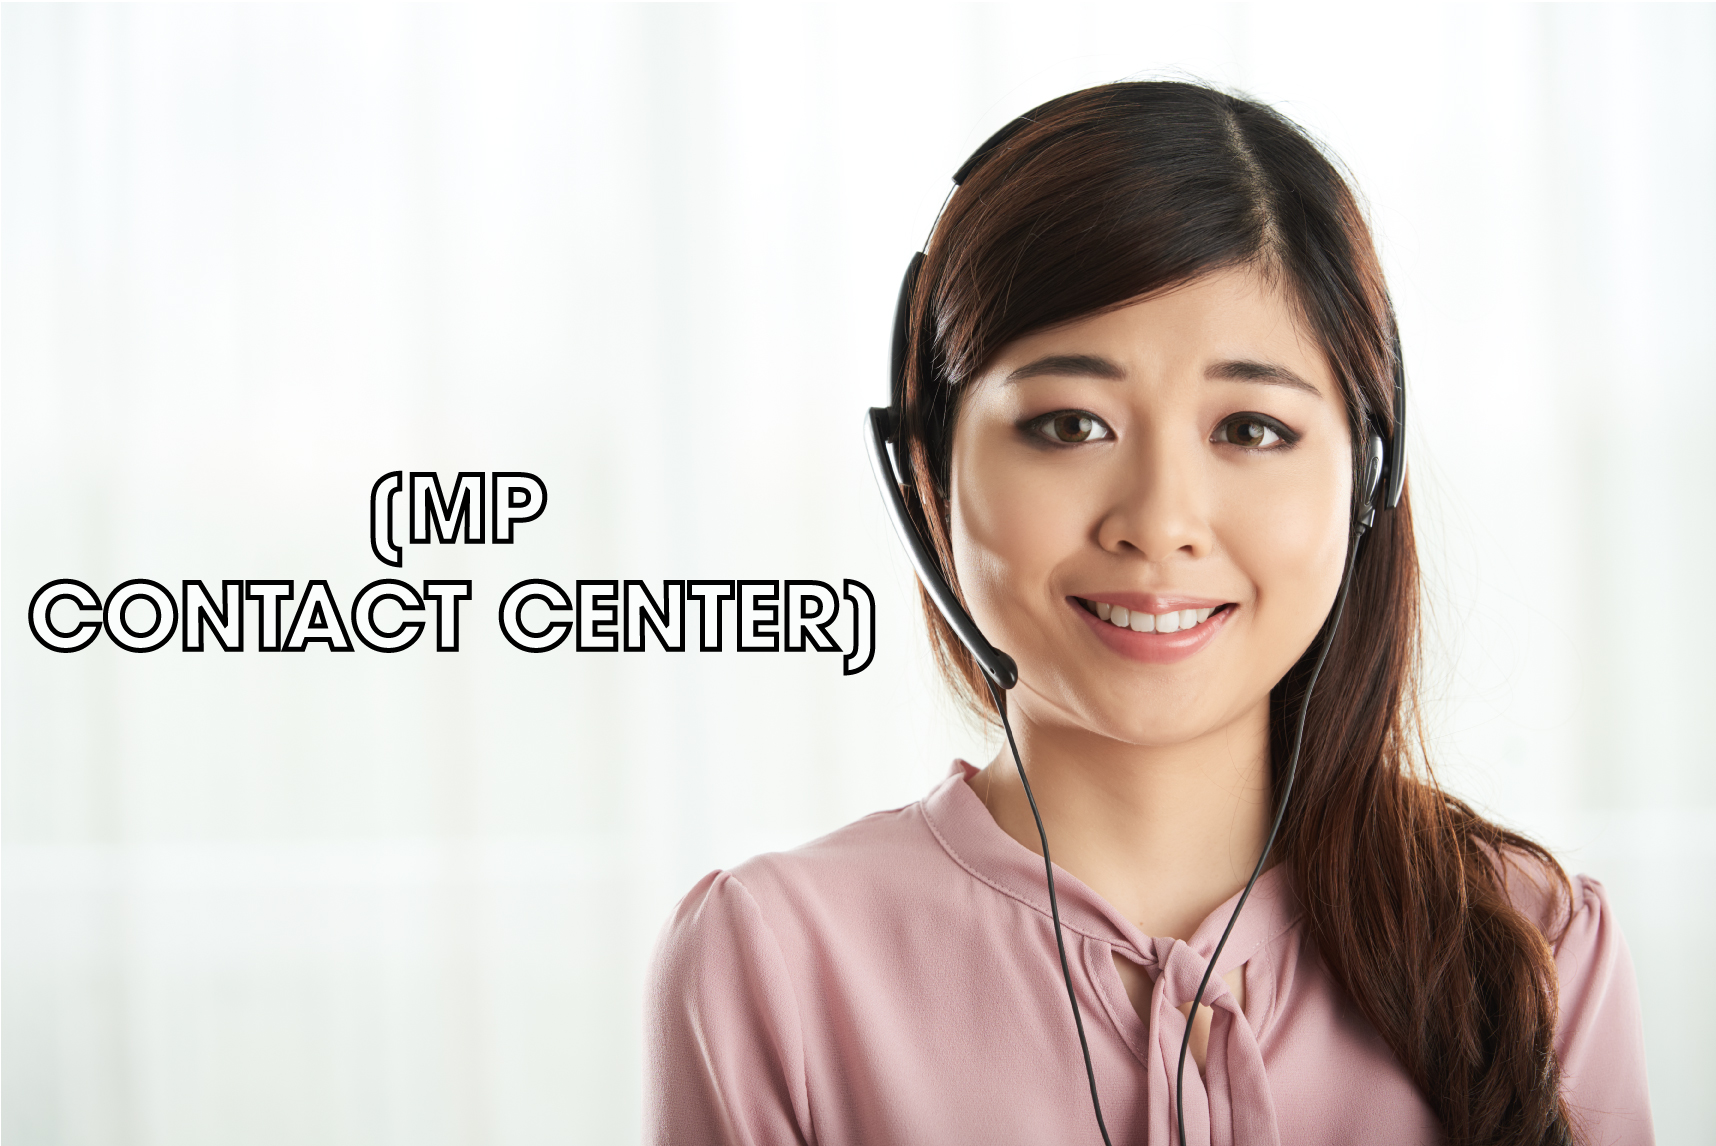 mp-contact-center-la-gi